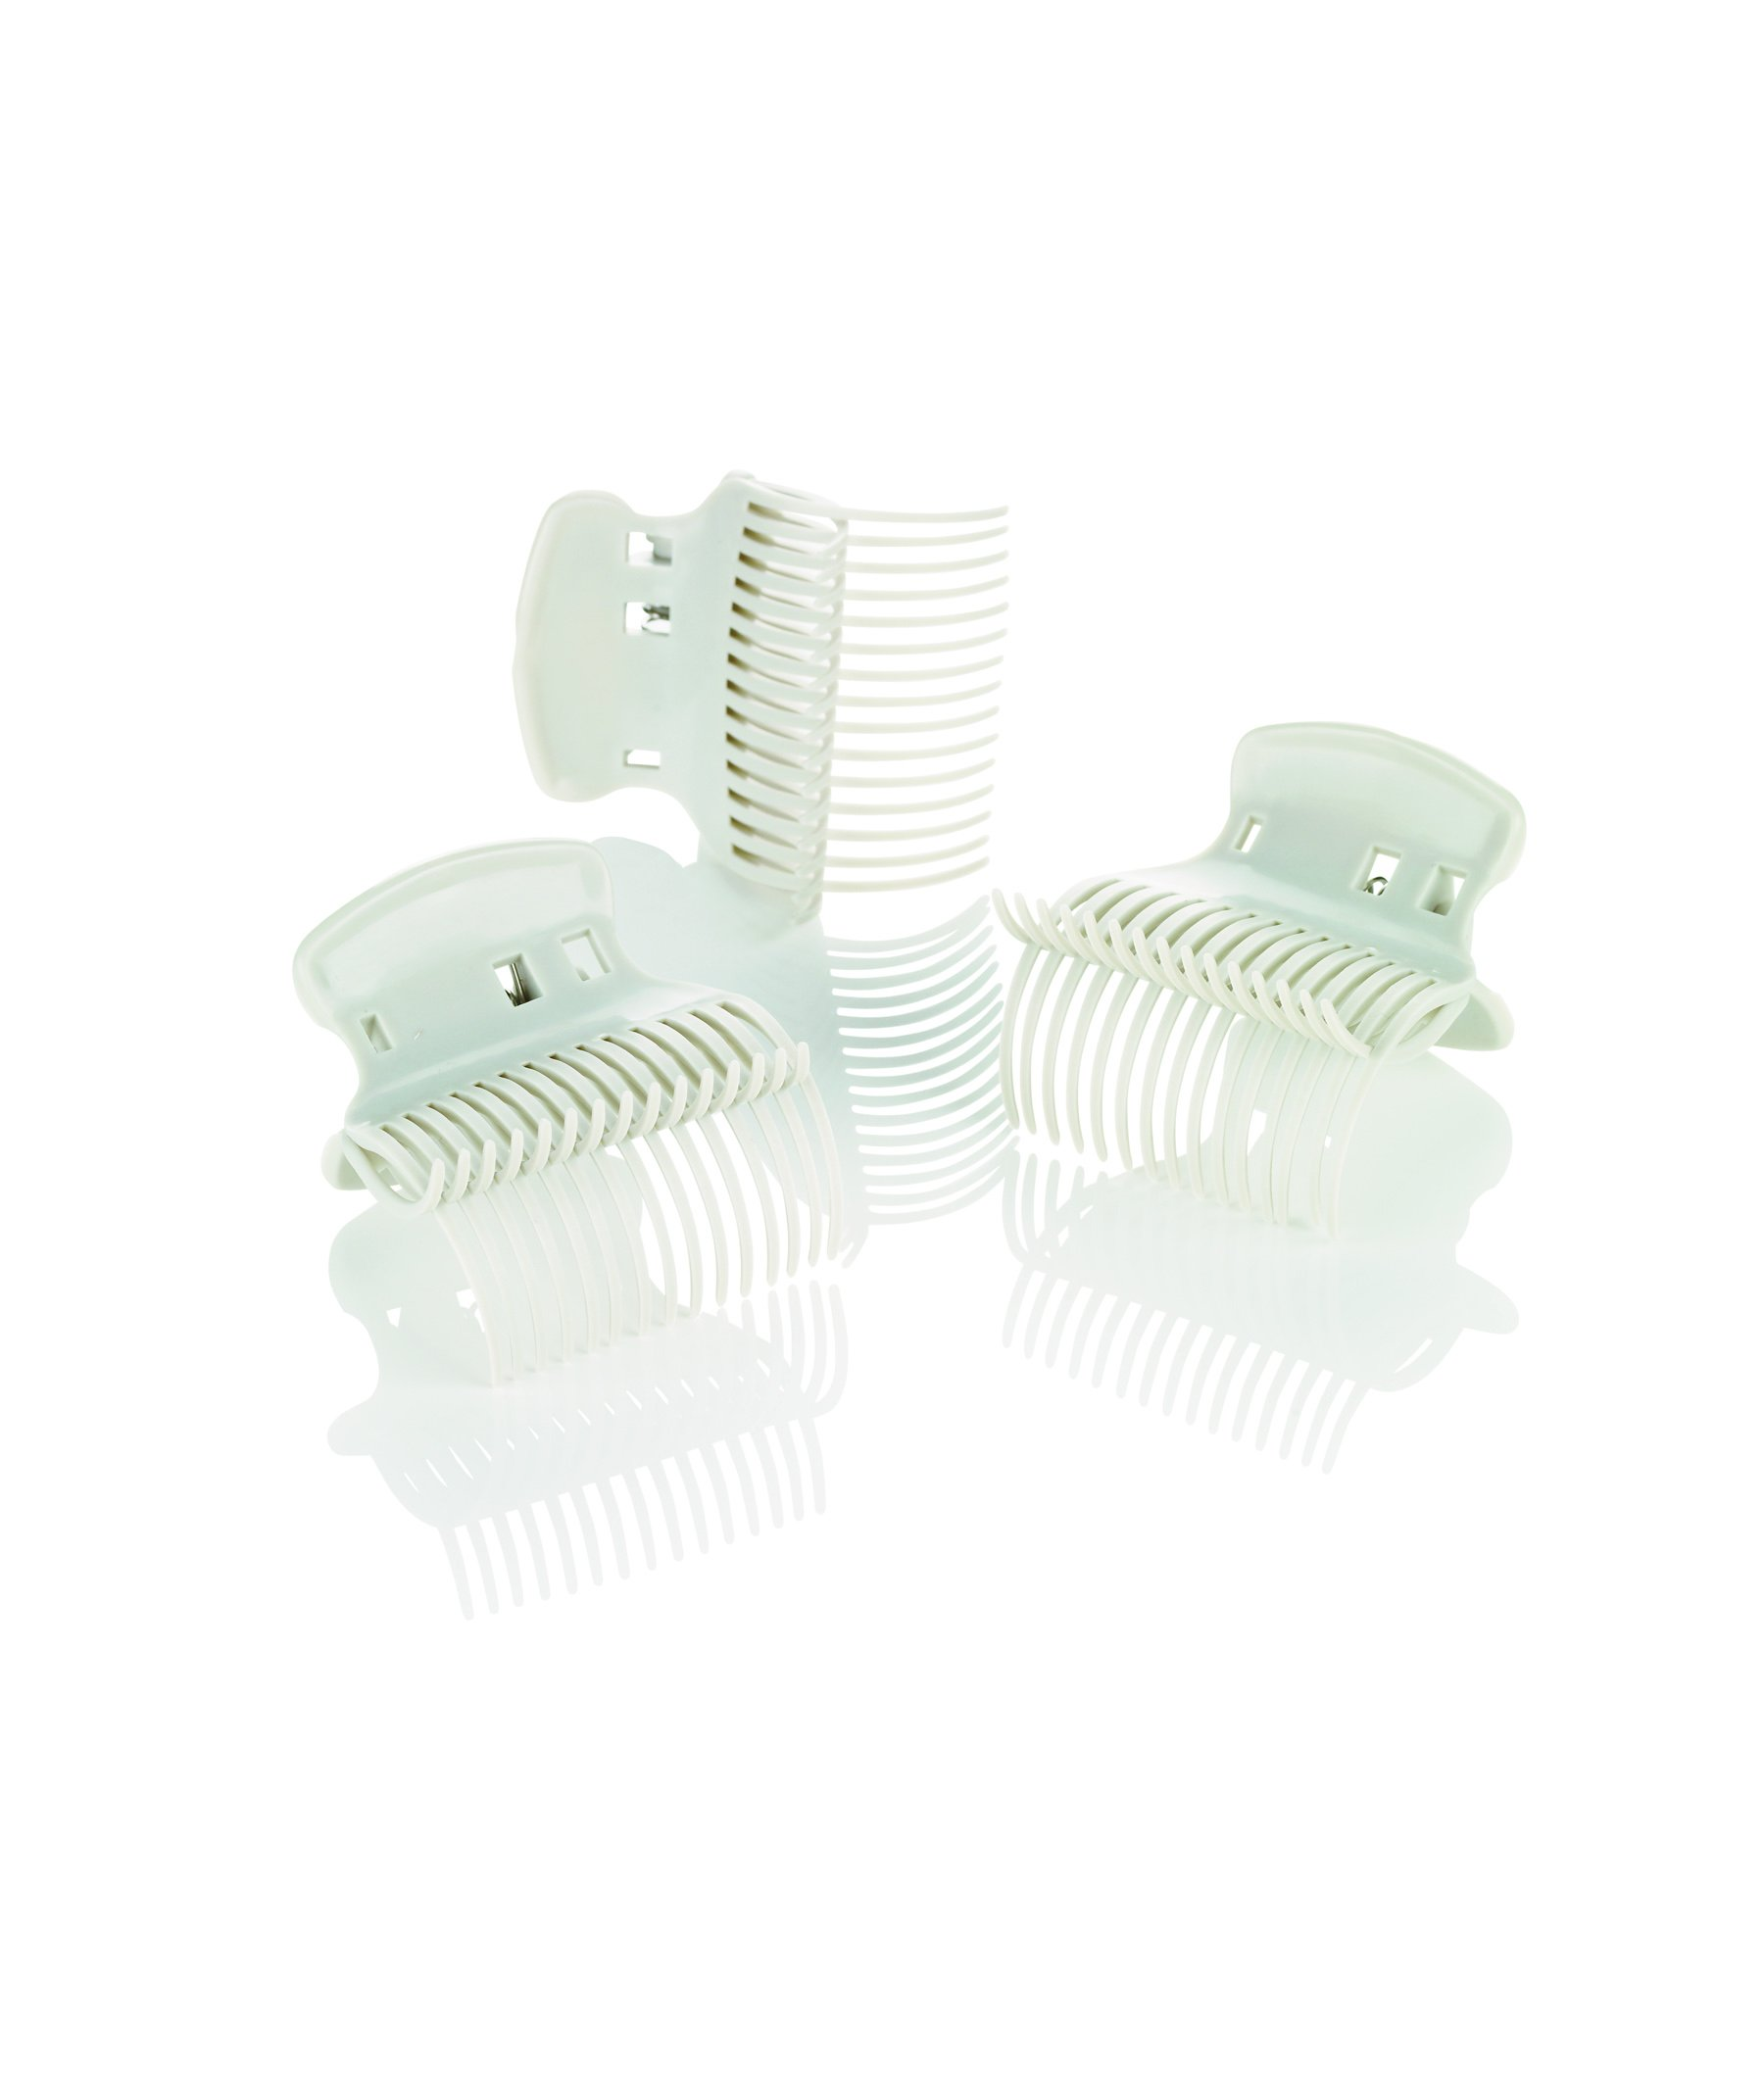 Conair Hot Roller Super Clips, White by Conair